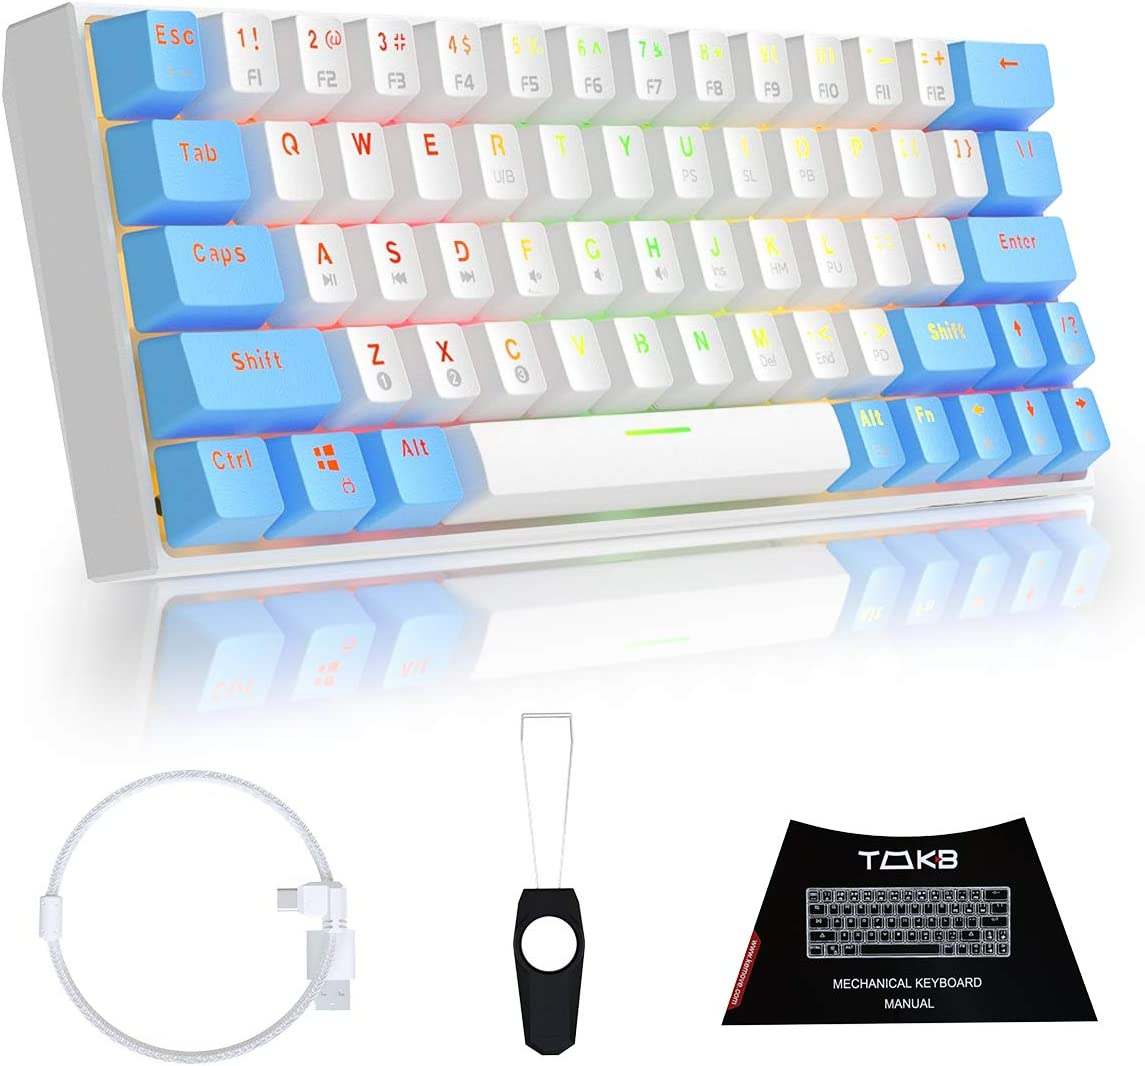 TMKB Mechanical Gaming Keyboard 60% True RGB Backlit Bluetooth 5.0 Wired/Wireless LED Computer Keyboard for Multi-Device iPhone Android Mobile PC Laptop - OUTEMU Brown Switch (GK63-W)